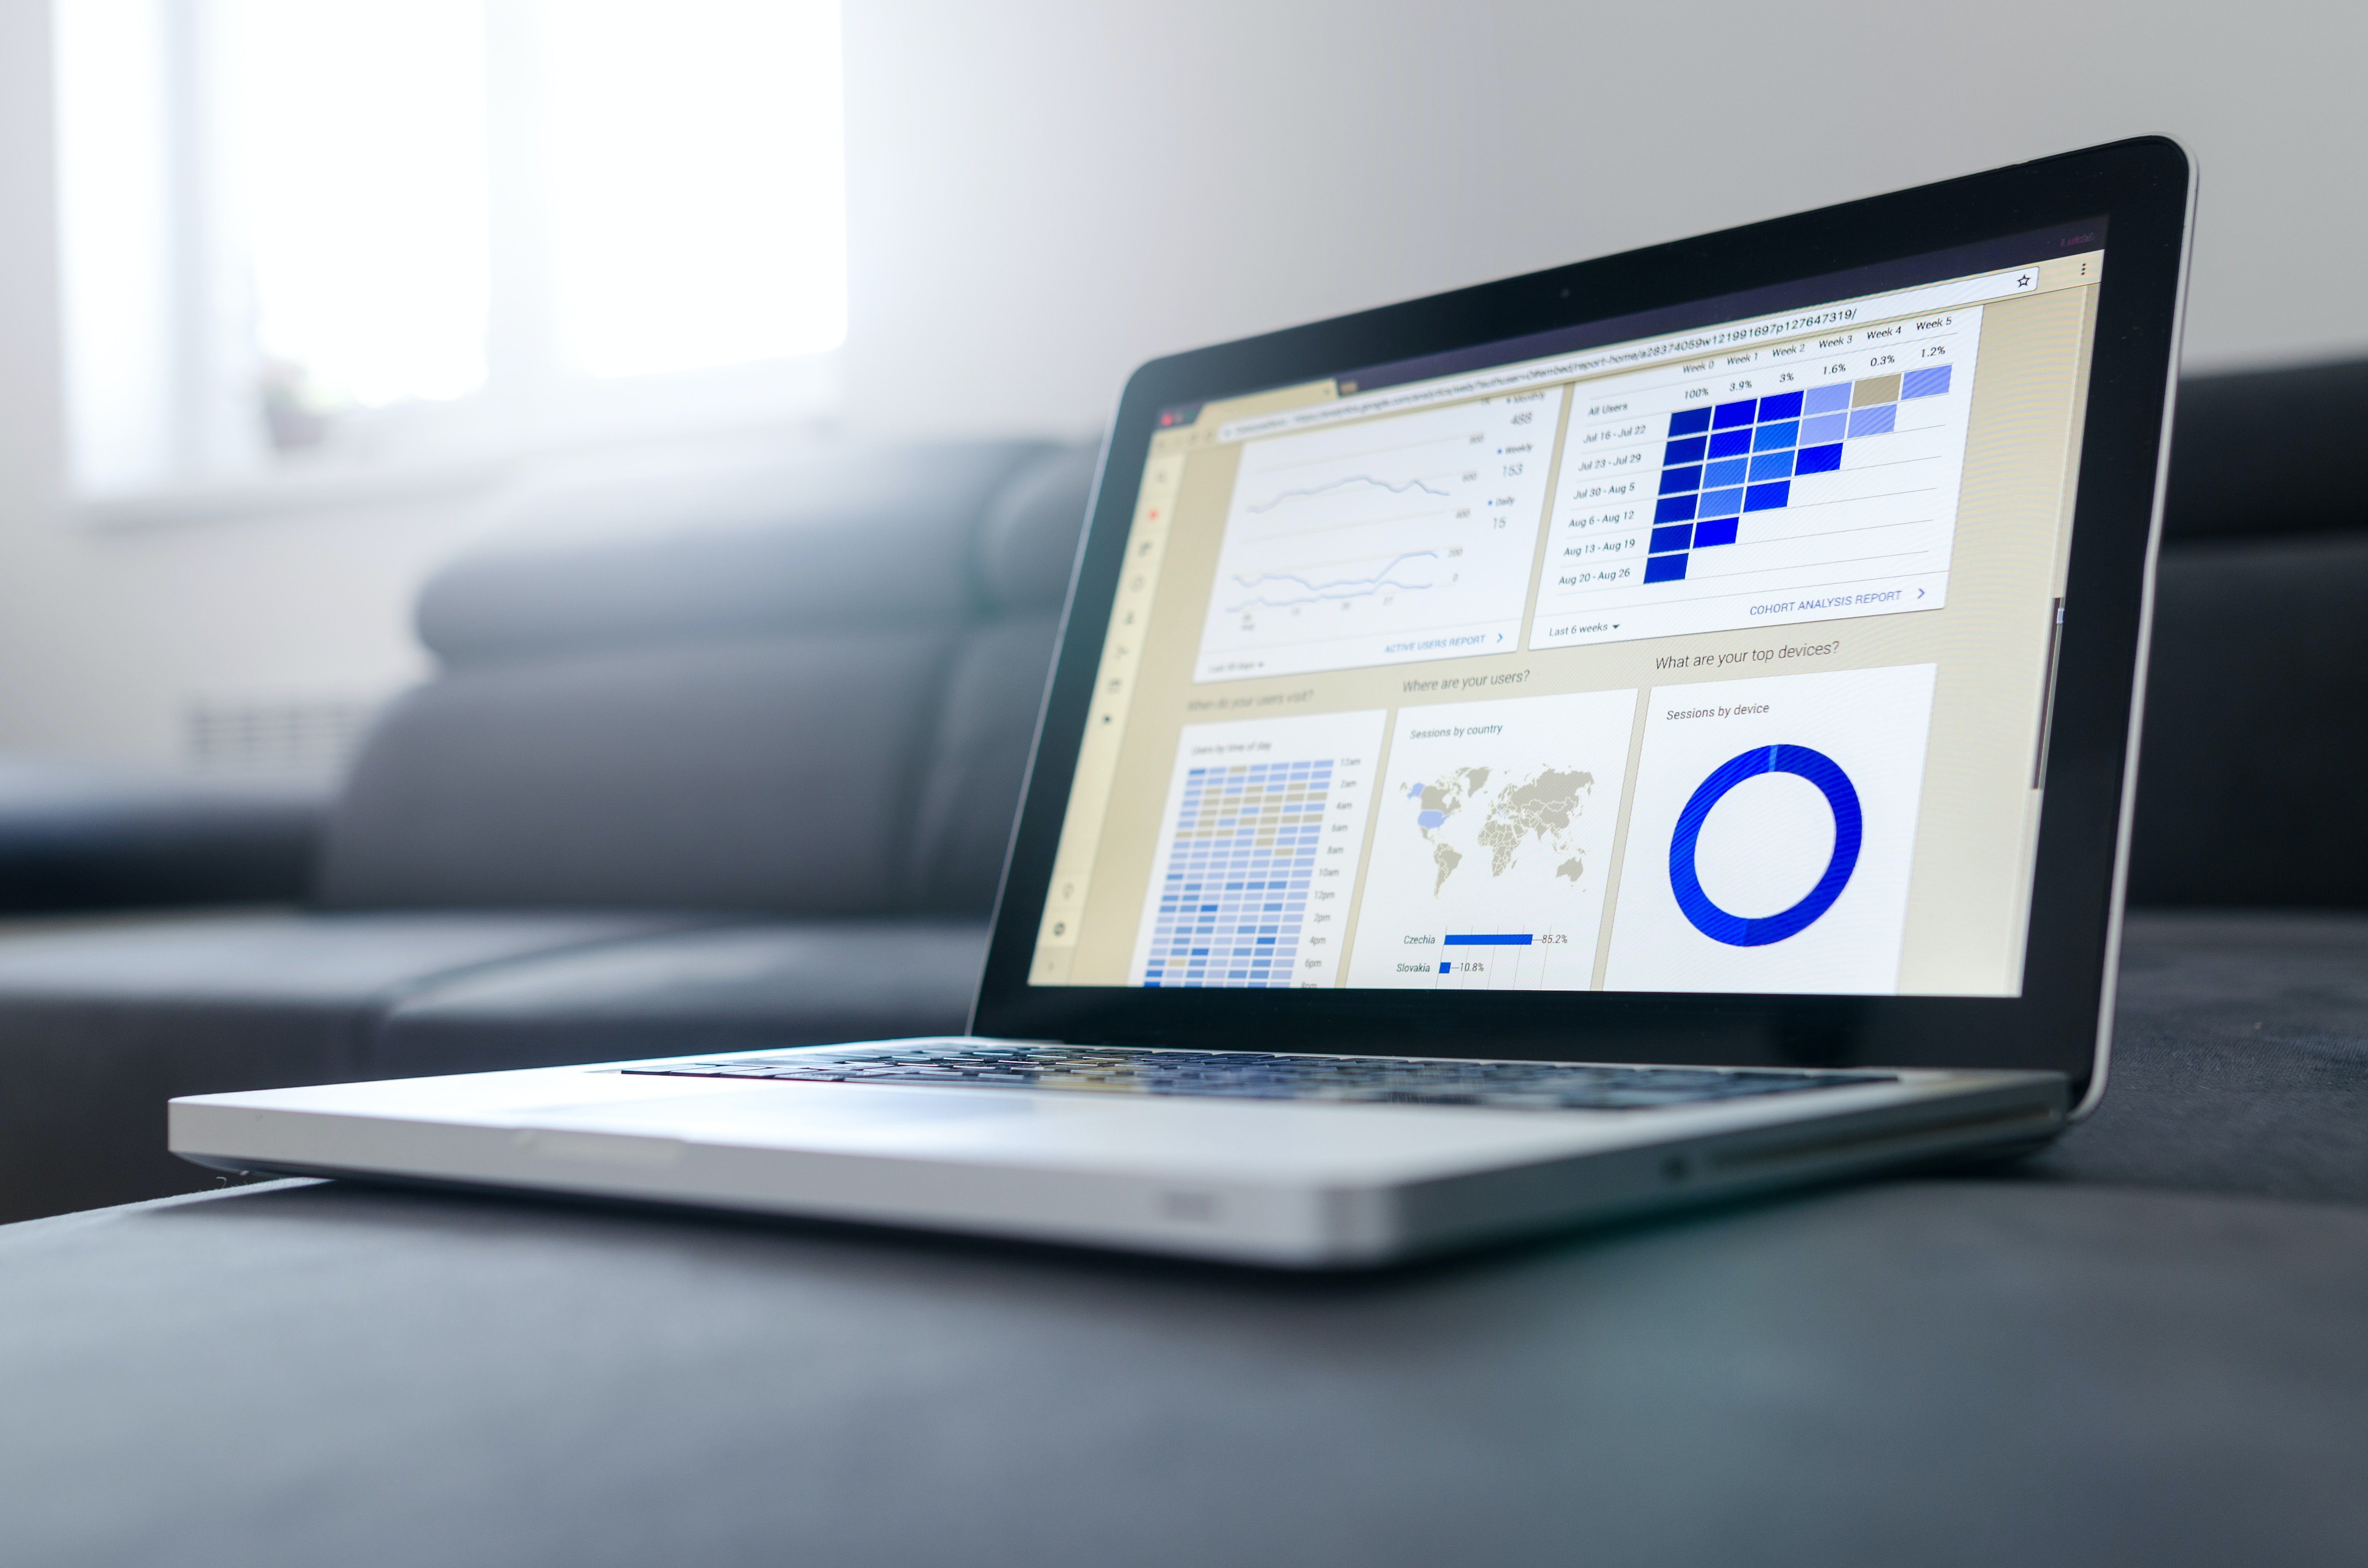 A laptop with graphs on the screen | Source: Unsplash / Lukas Blazek